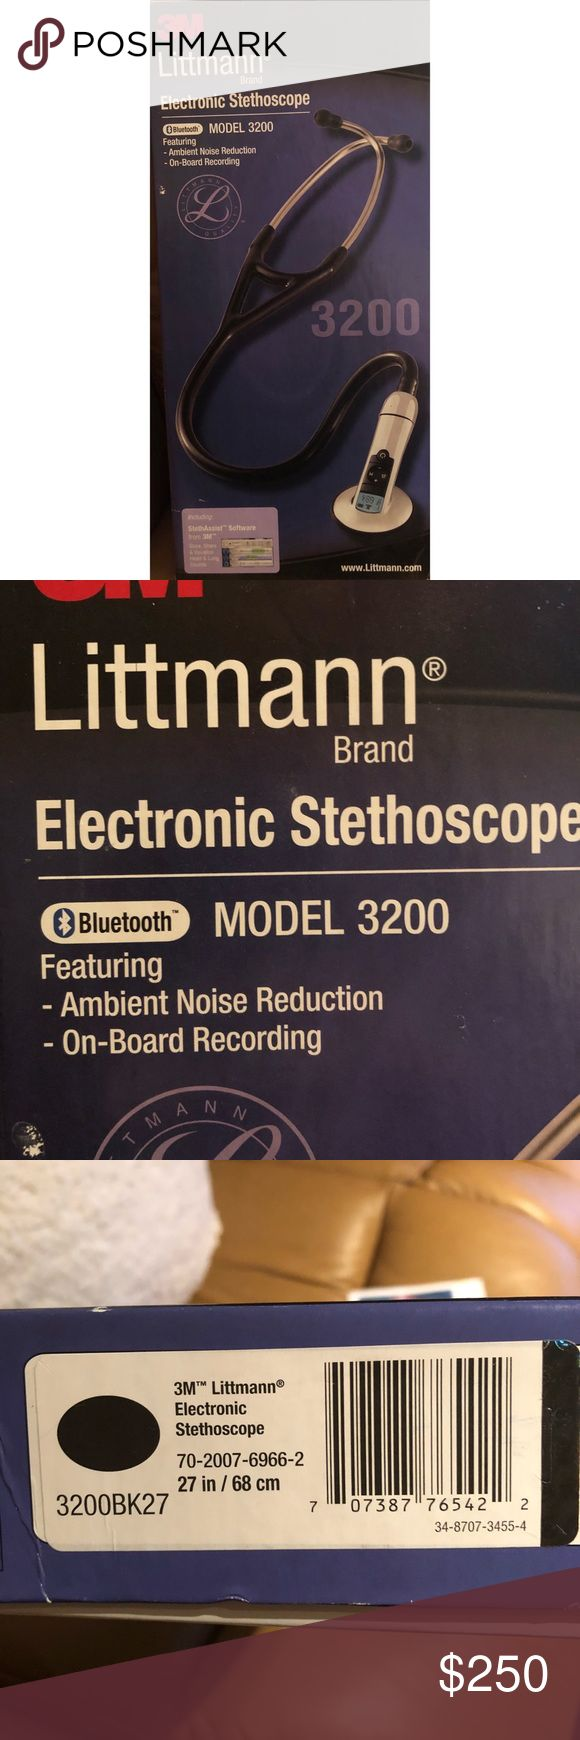 Littmann Electronic Stethoscope 3200 Black Used Littmann Electronic Stethoscope 3200 in Black. Bluetooth, Ambient Noise Reduction. Works great but Black polish is wearing off on one edge of the bell & there is a tiny chip on the glass display. See photos.  Record and save up to twelve 30-sec patient sound tracks Transmit sounds via Bluetooth® technology (Bluetooth® adaptor included – not compatible with Apple devices) Eliminate 85% (on average) of ambient noise Amplify sounds up to 24x The…